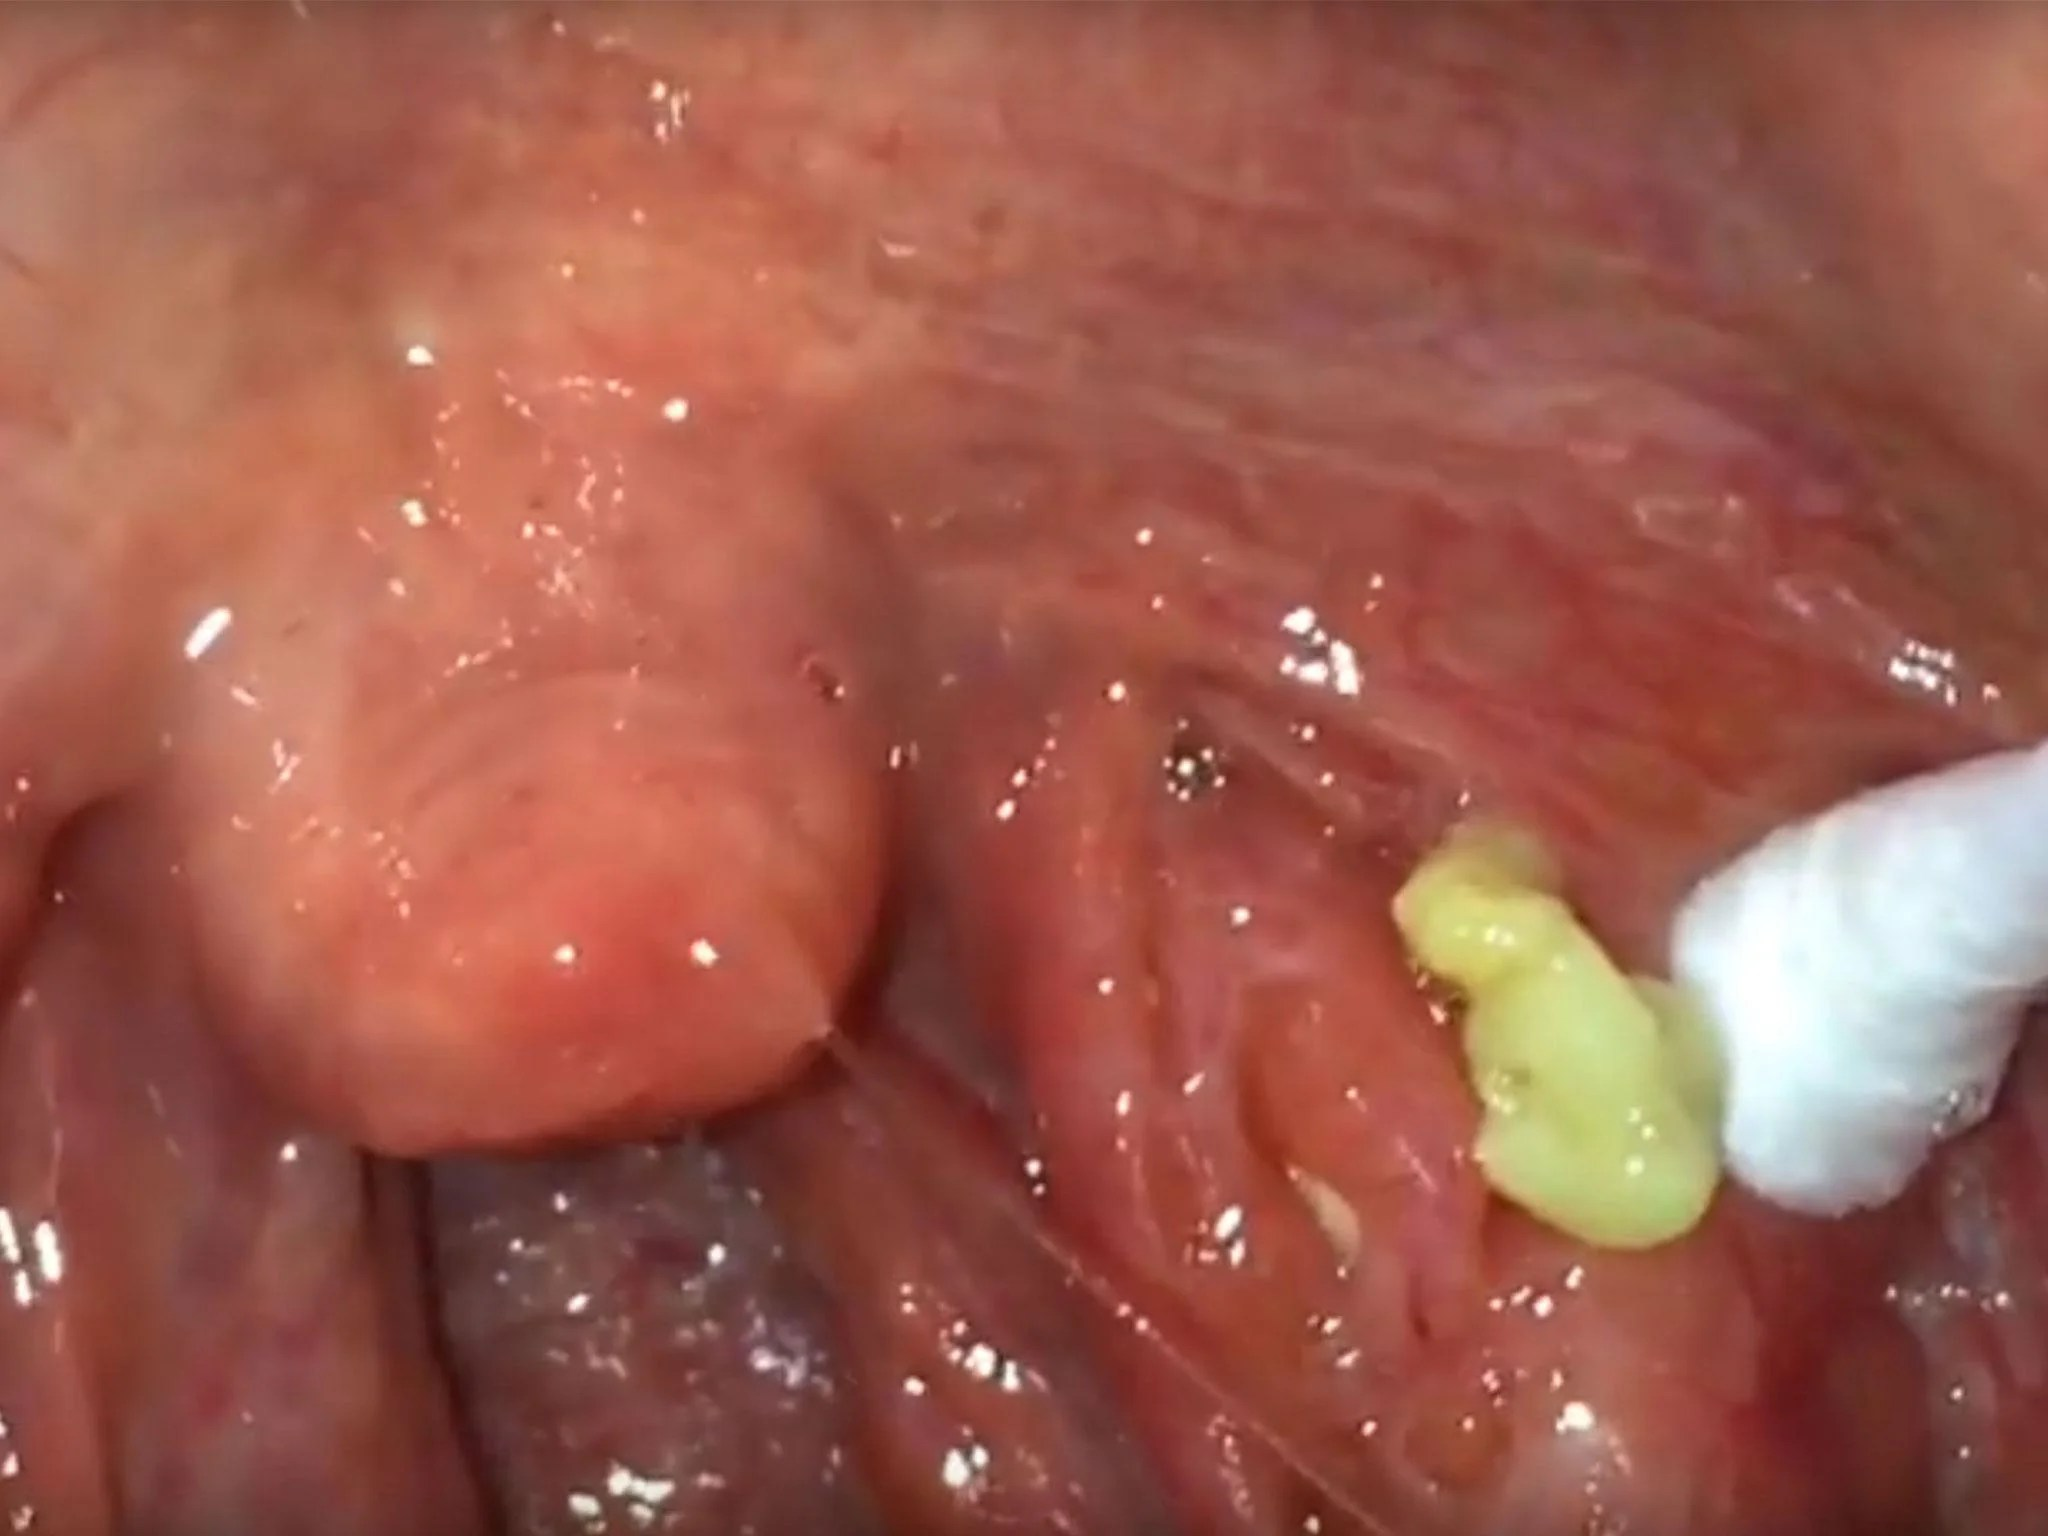 White Tonsils Pieces